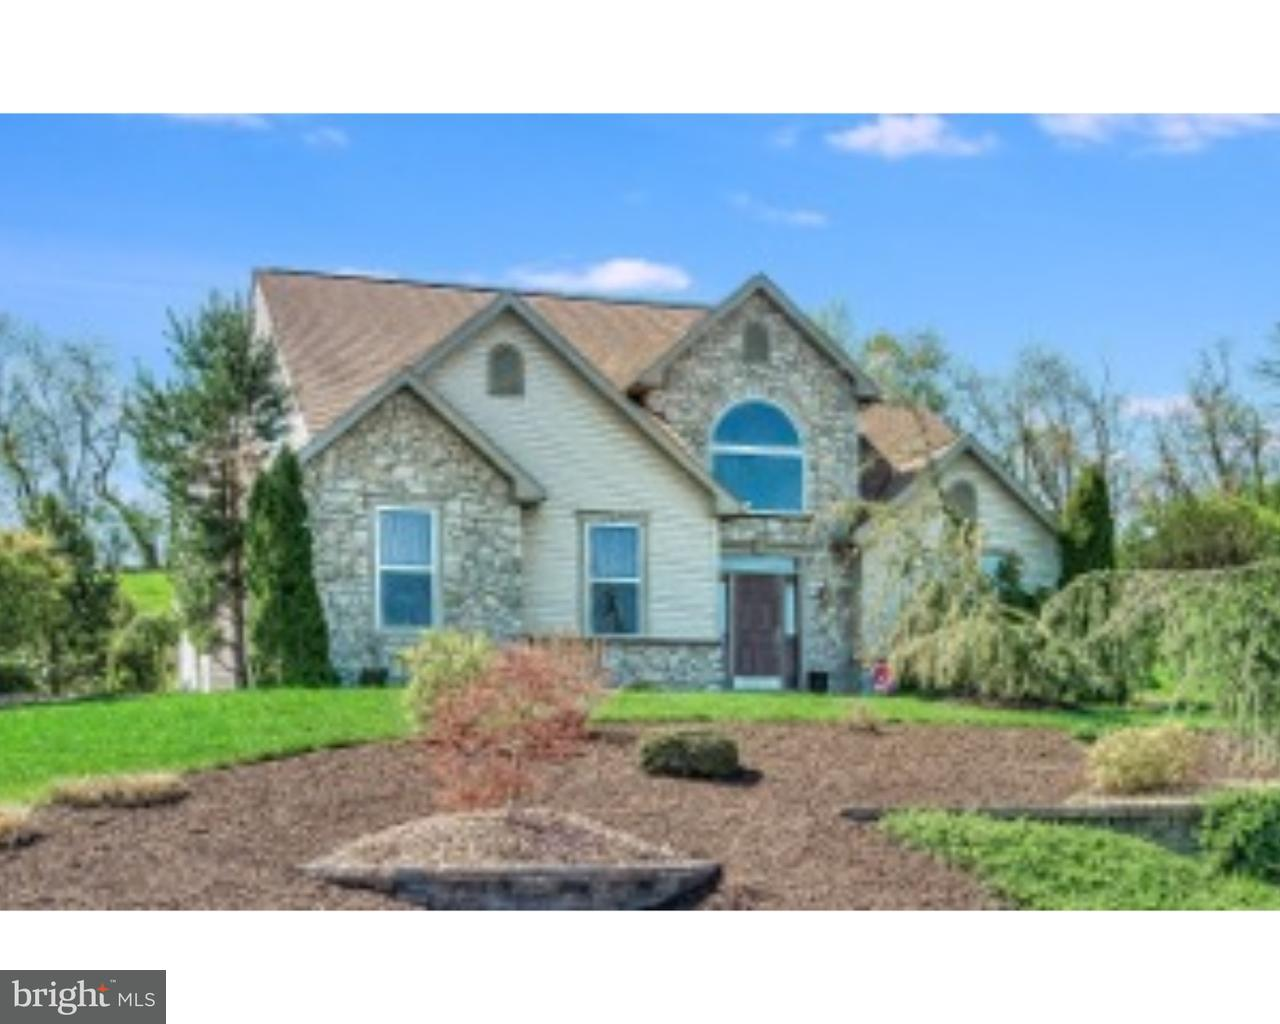 433 EAGLEVIEW DR, MOHRSVILLE - Listed at $318,000, MOHRSVILLE